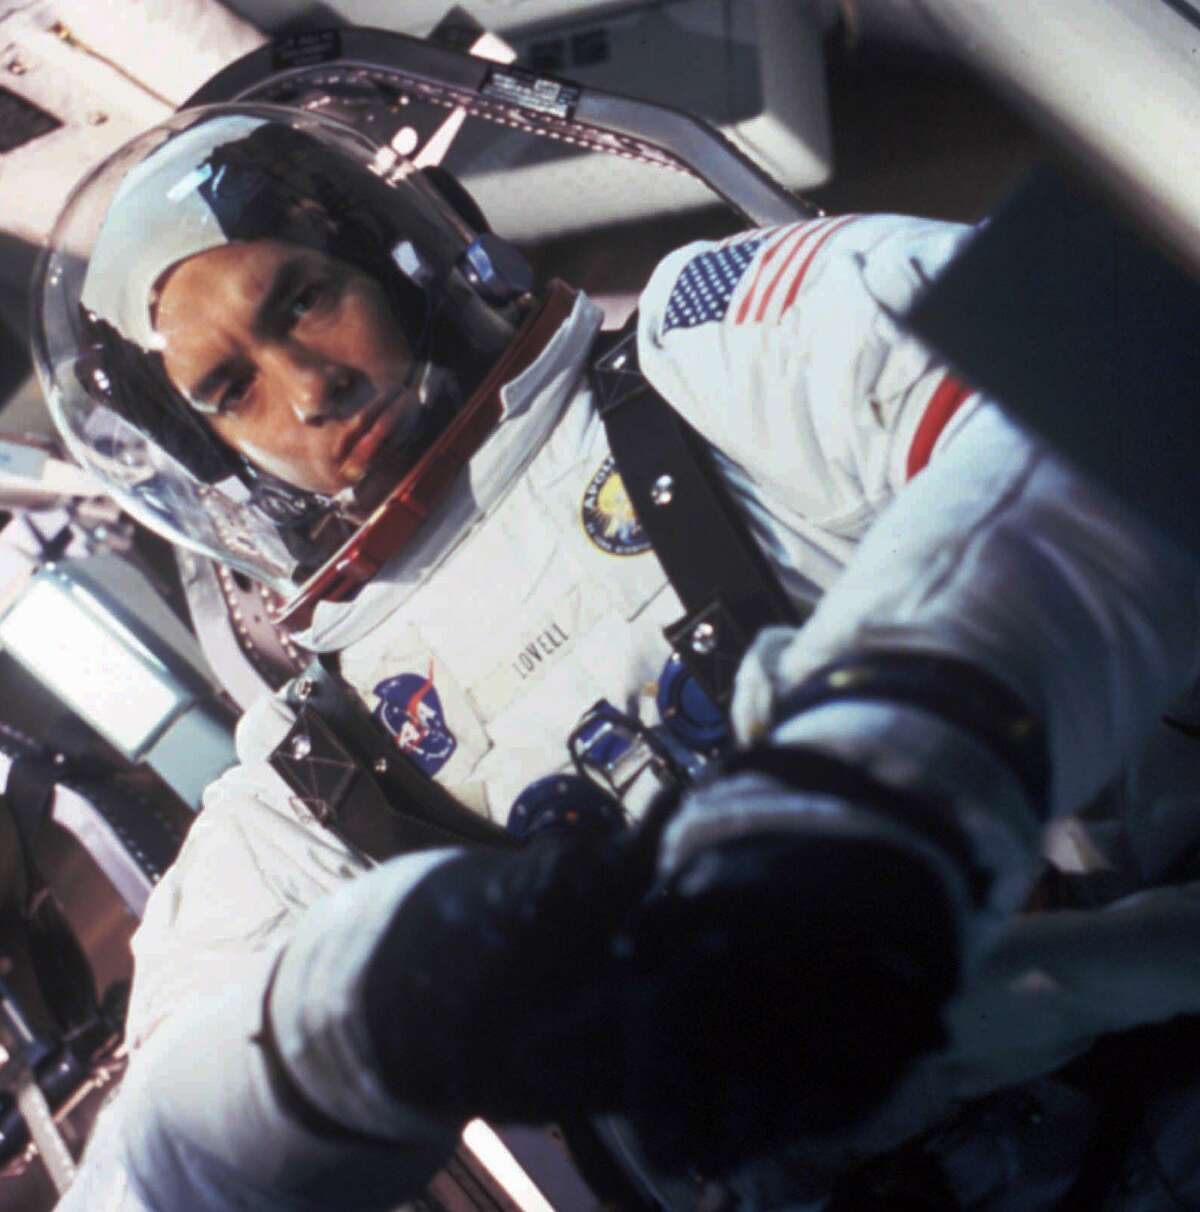 """Actor Tom Hanks is shown in character as astronaut Jim Lovell in the movie """"Apollo 13."""" The film, directed by Ron Howard, tells the story of the ill-fated 1970 moon shot. Two days after the spacecraft was launched on April 11, 1970, an oxygen tank blew, knocking out the electrical system and stranding the three-man crew somewhere between the Moon and Earth. With the help of an ingenious ground crew and the astronauts' own resourcefulness, they made it back alive."""